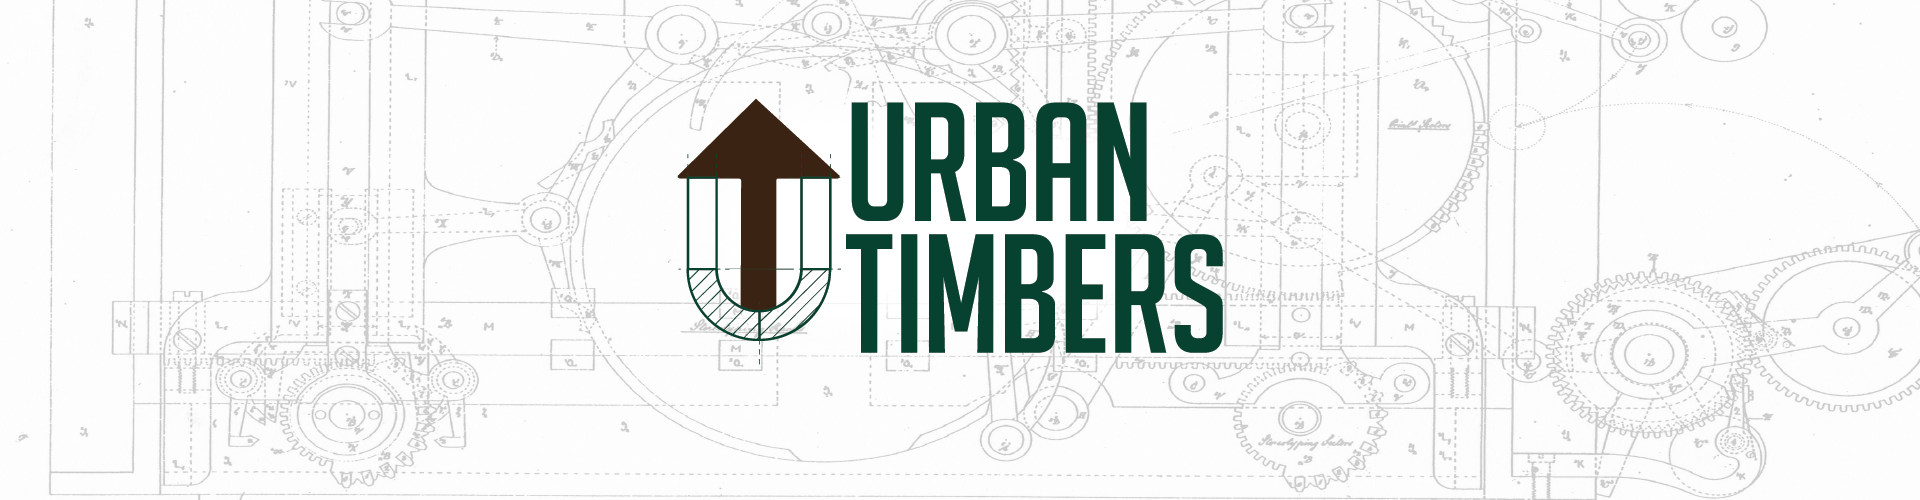 Urban Timbers - Wood Slabs. Furniture Grade Lumber. Knife Making Supplies. Dimensional Lumber.